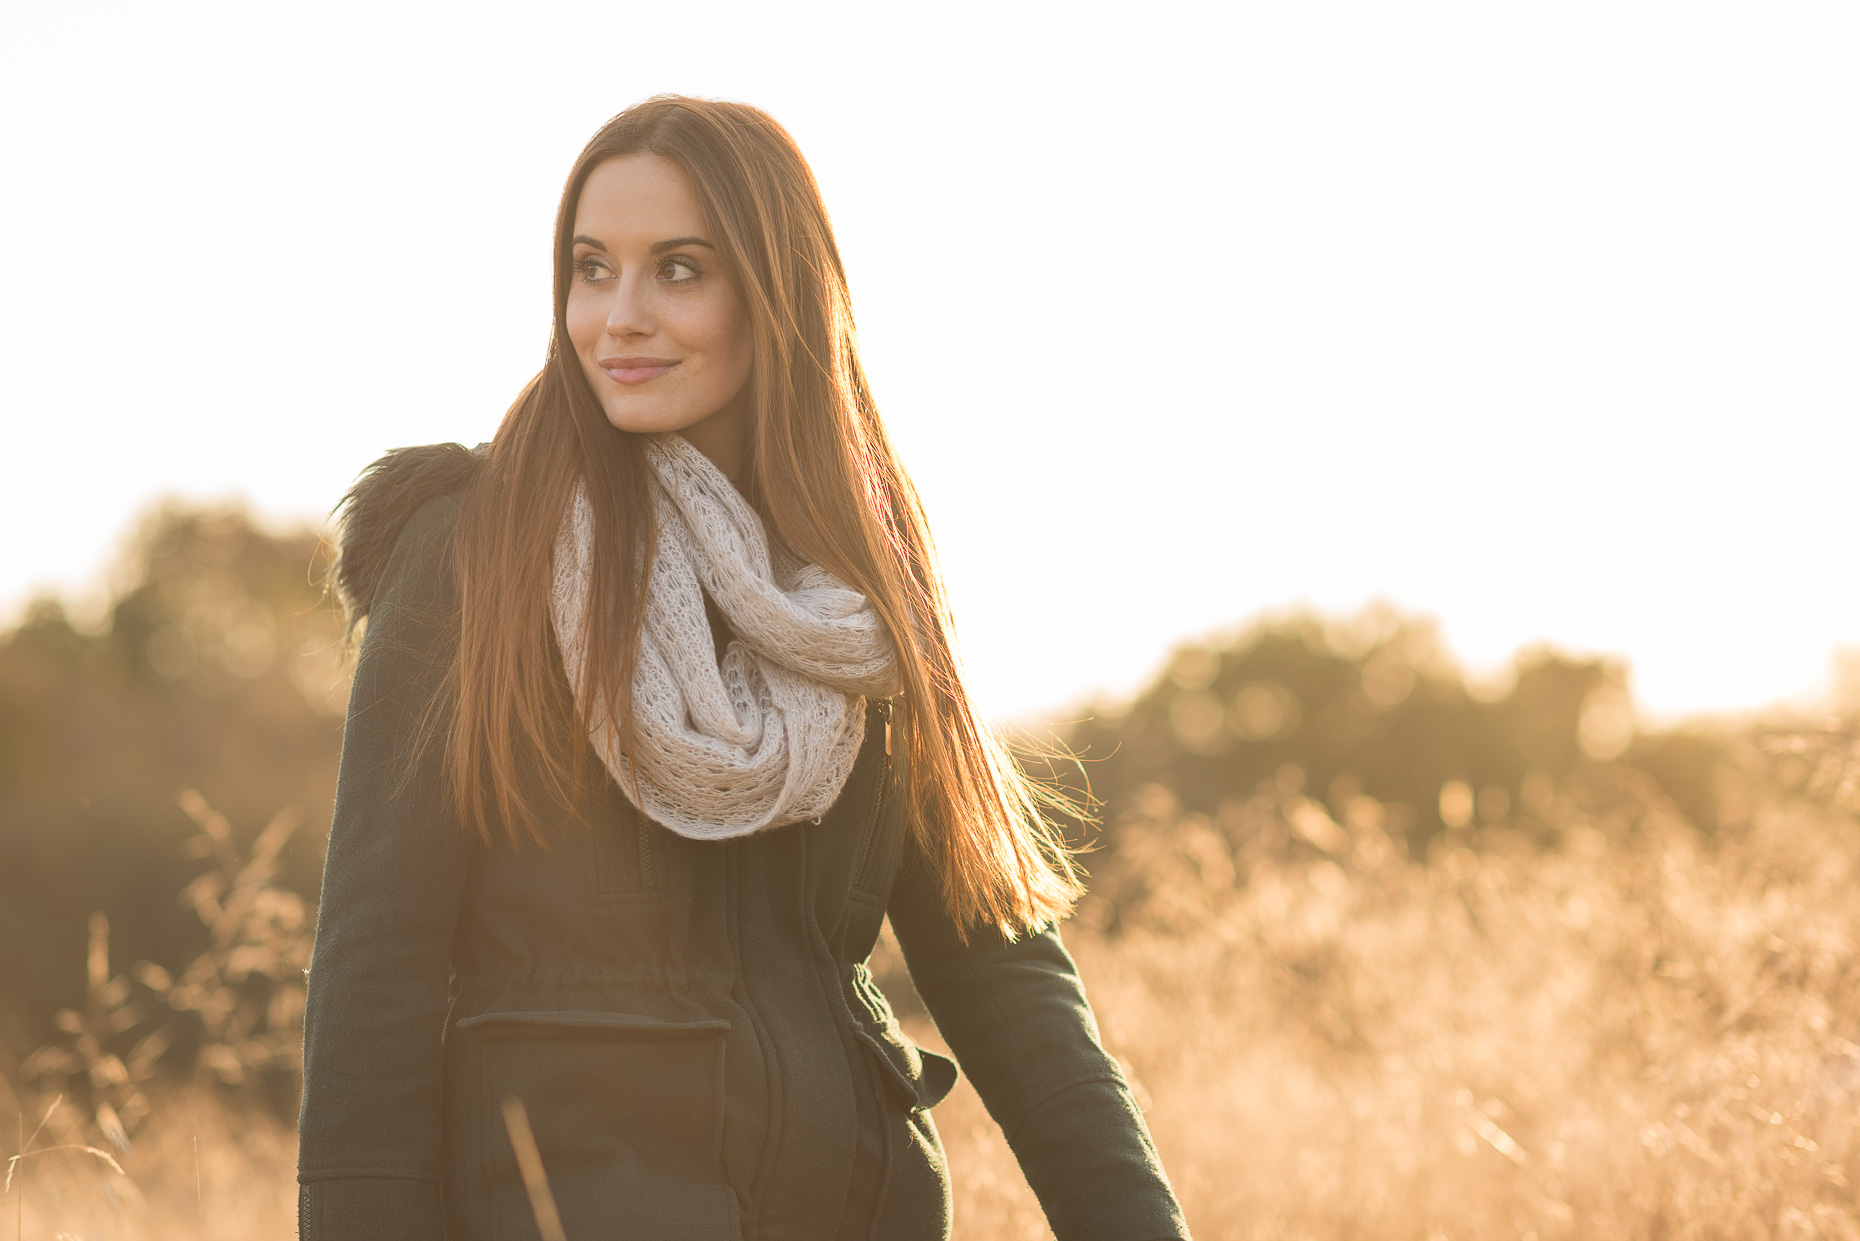 emily-winter-weather-beauty-fashion-woman-hiking-epping-forest-london-21